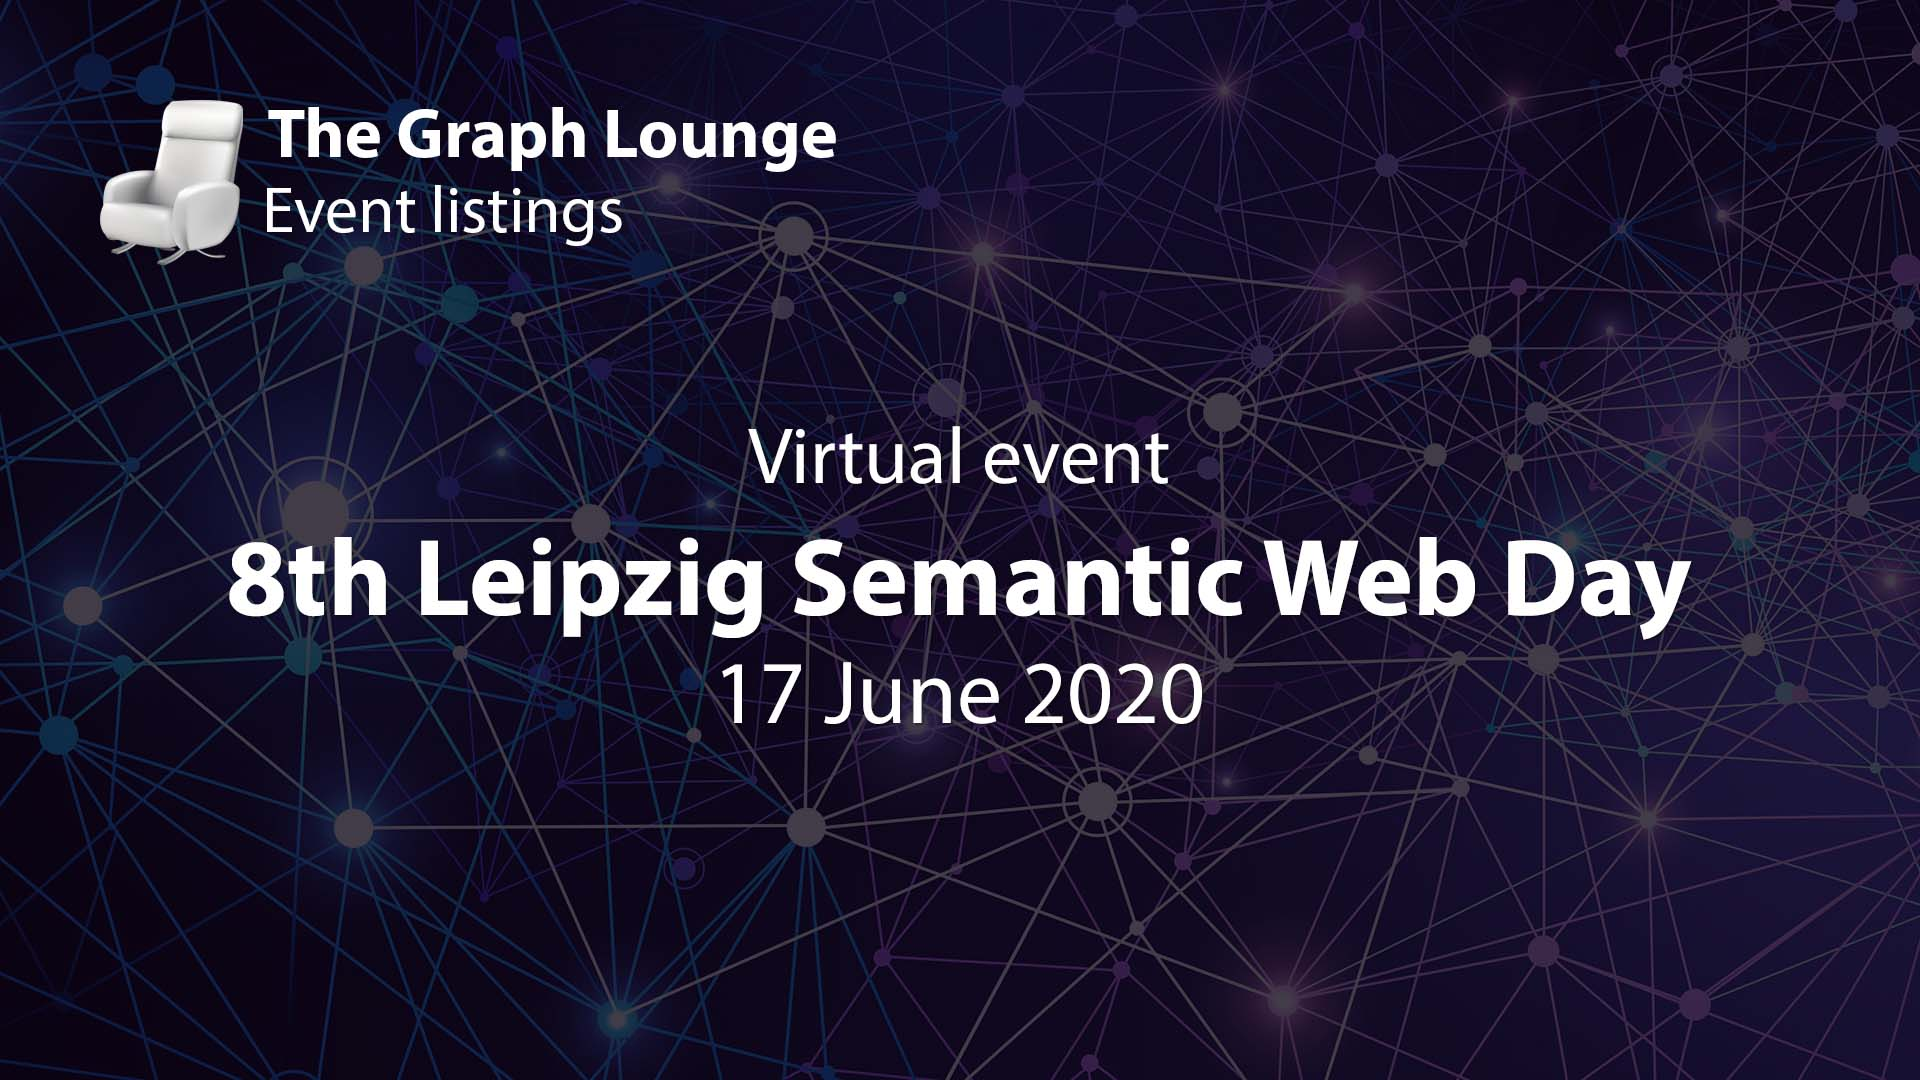 8th Leipzig Semantic Web Day